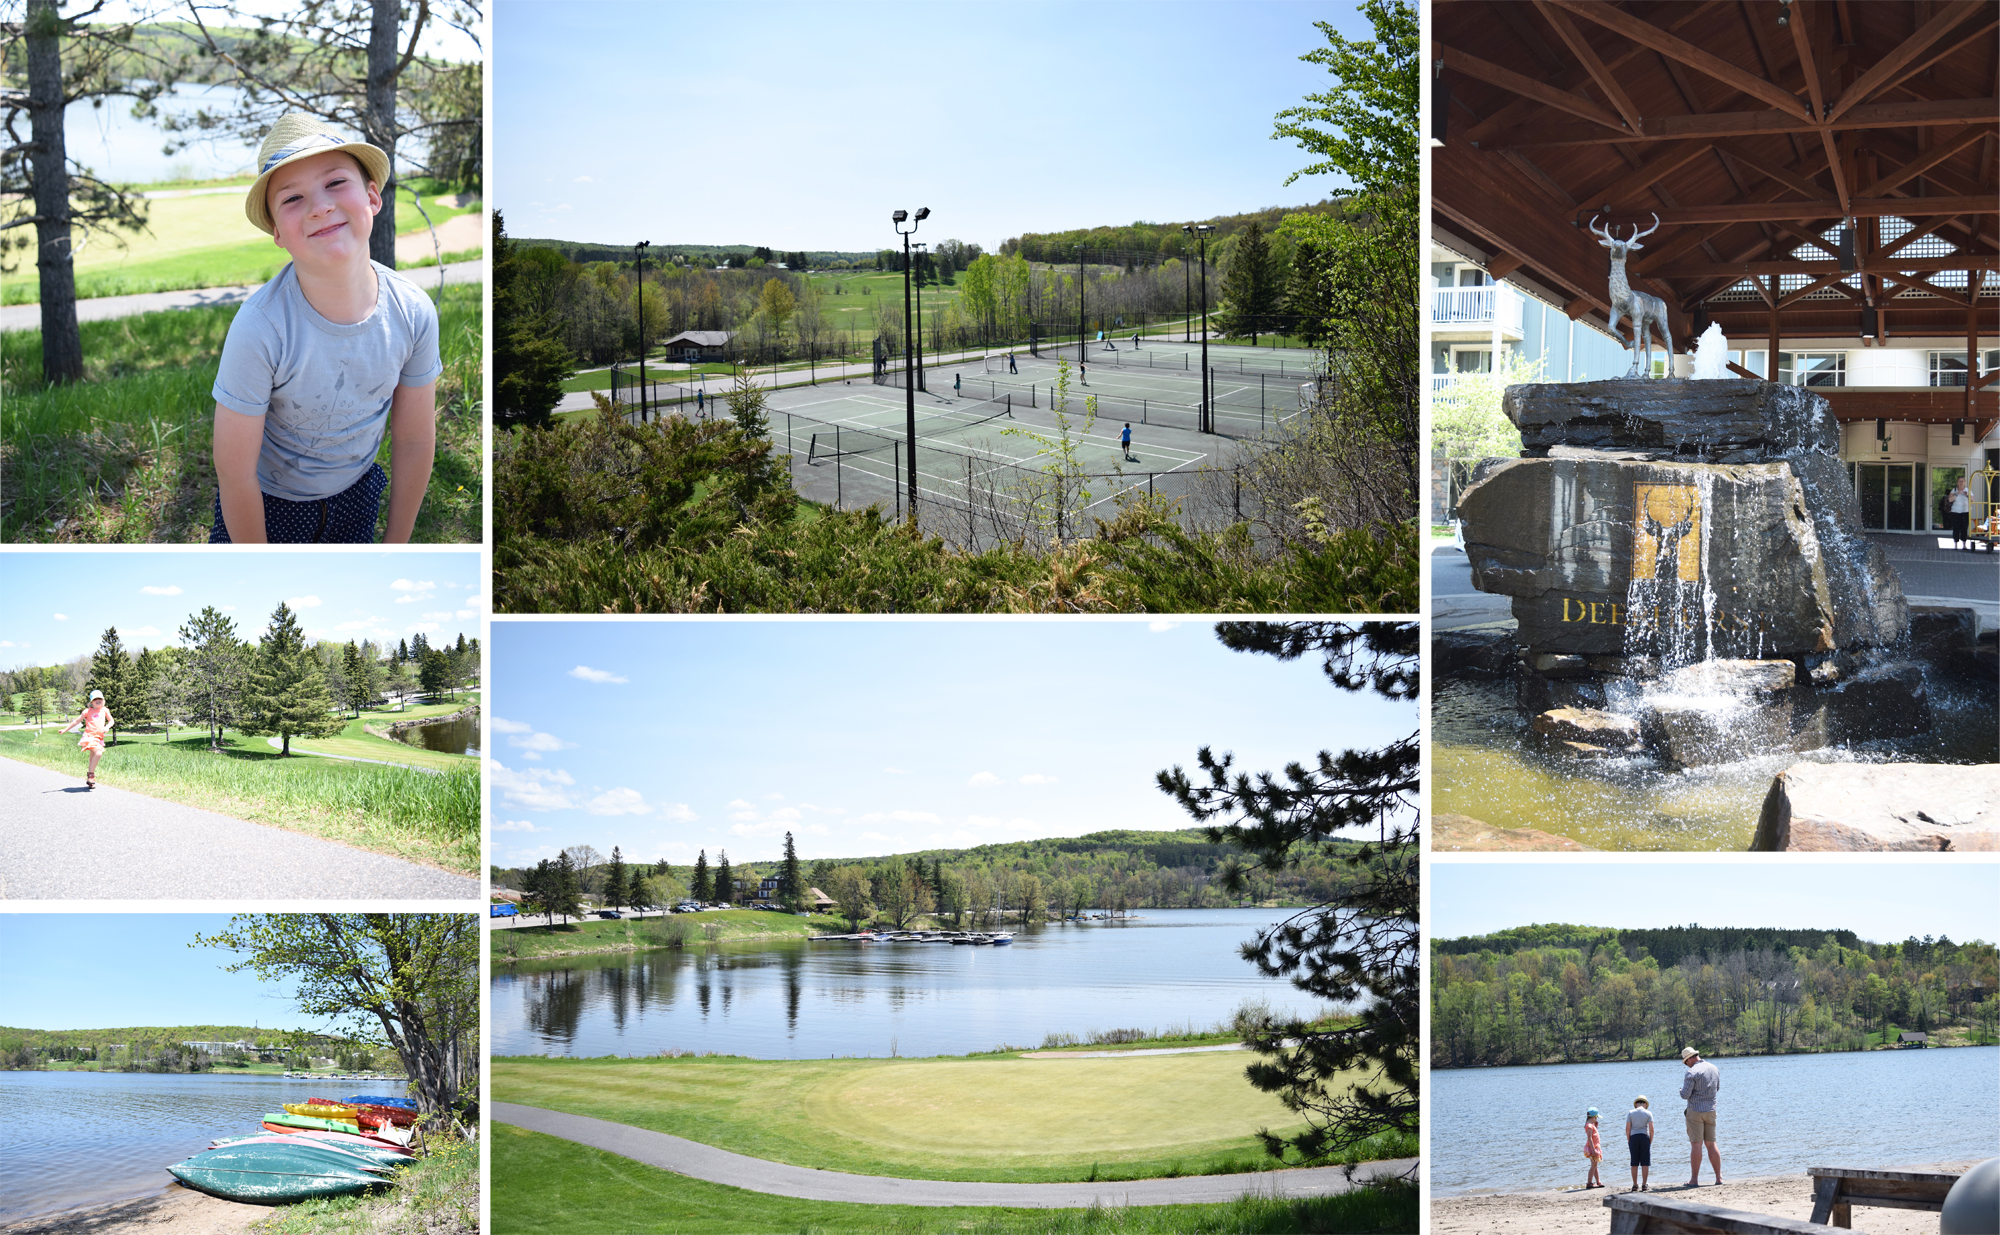 Deerhurst Resort - grounds